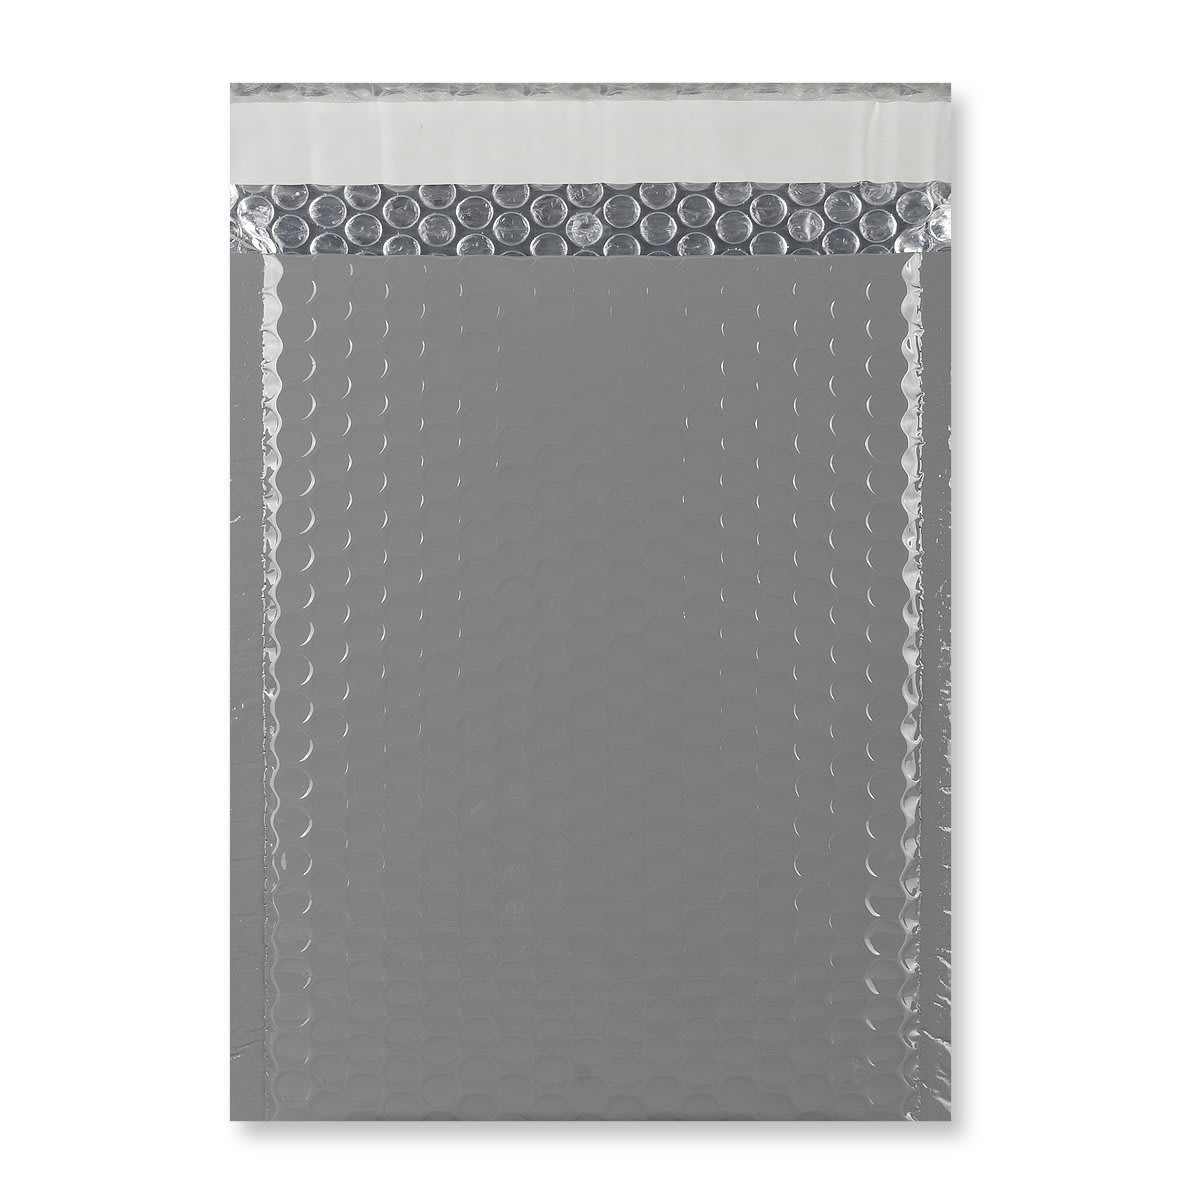 C5 + GLOSS METALLIC DARK GREY PADDED ENVELOPES (250 x 180MM)